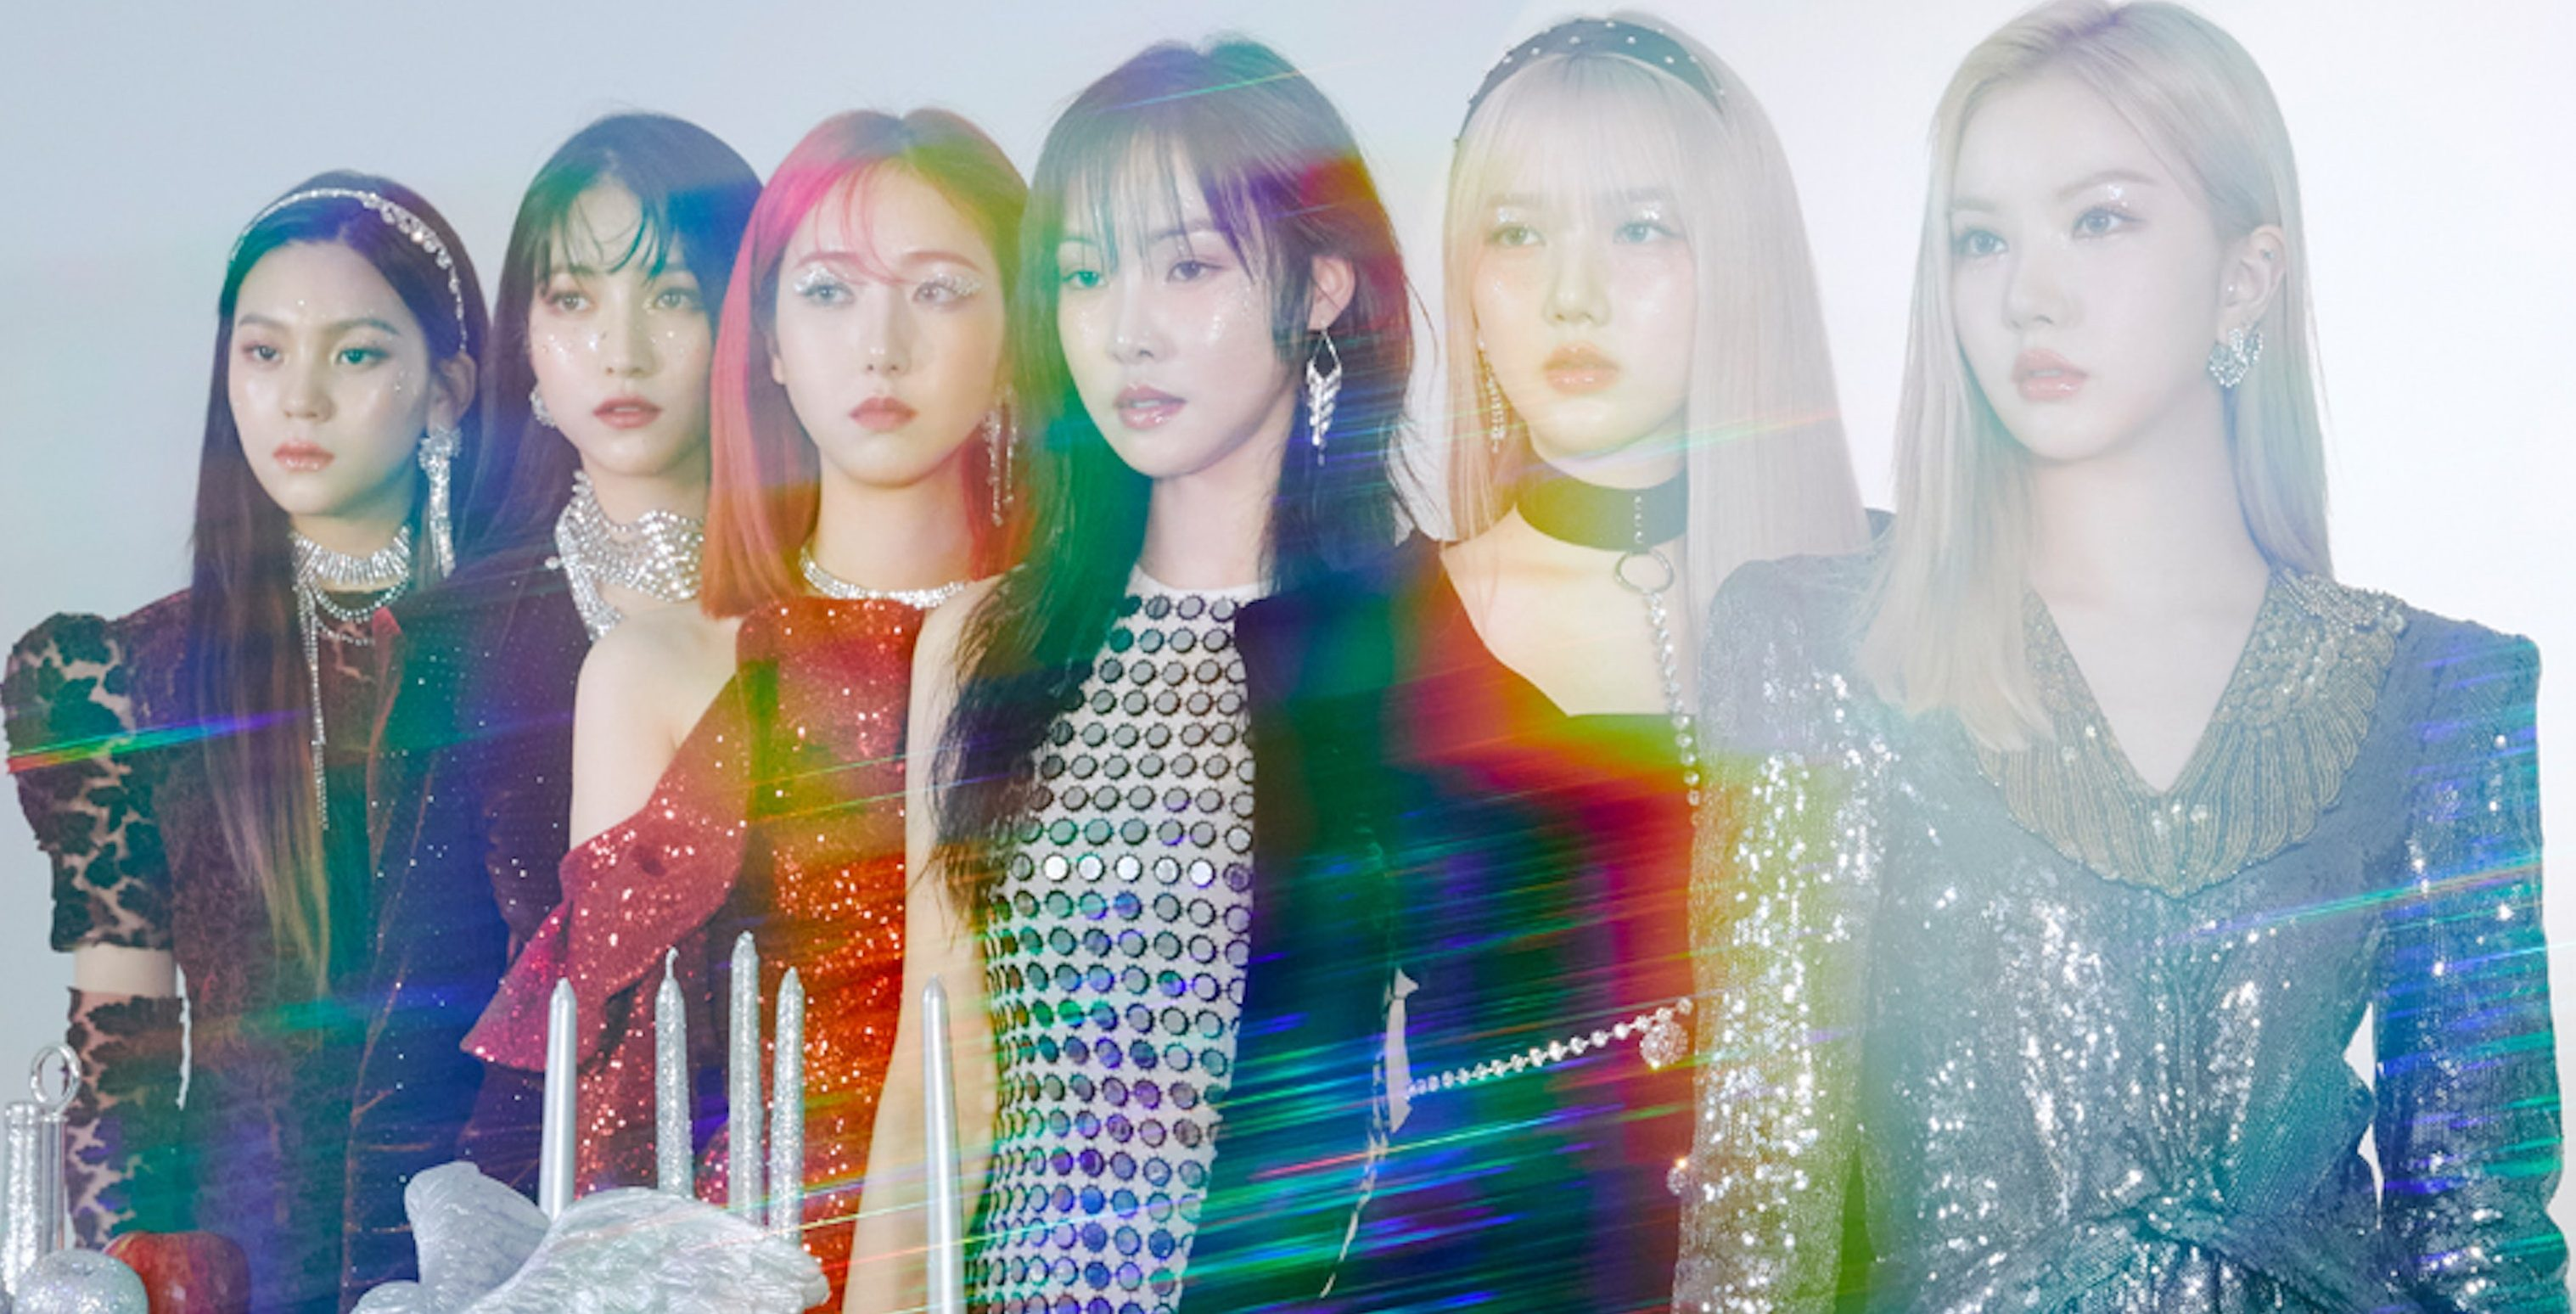 GFRIEND Gets Ready To Showcase Powerful Performances Through Their Upcoming Online Concert